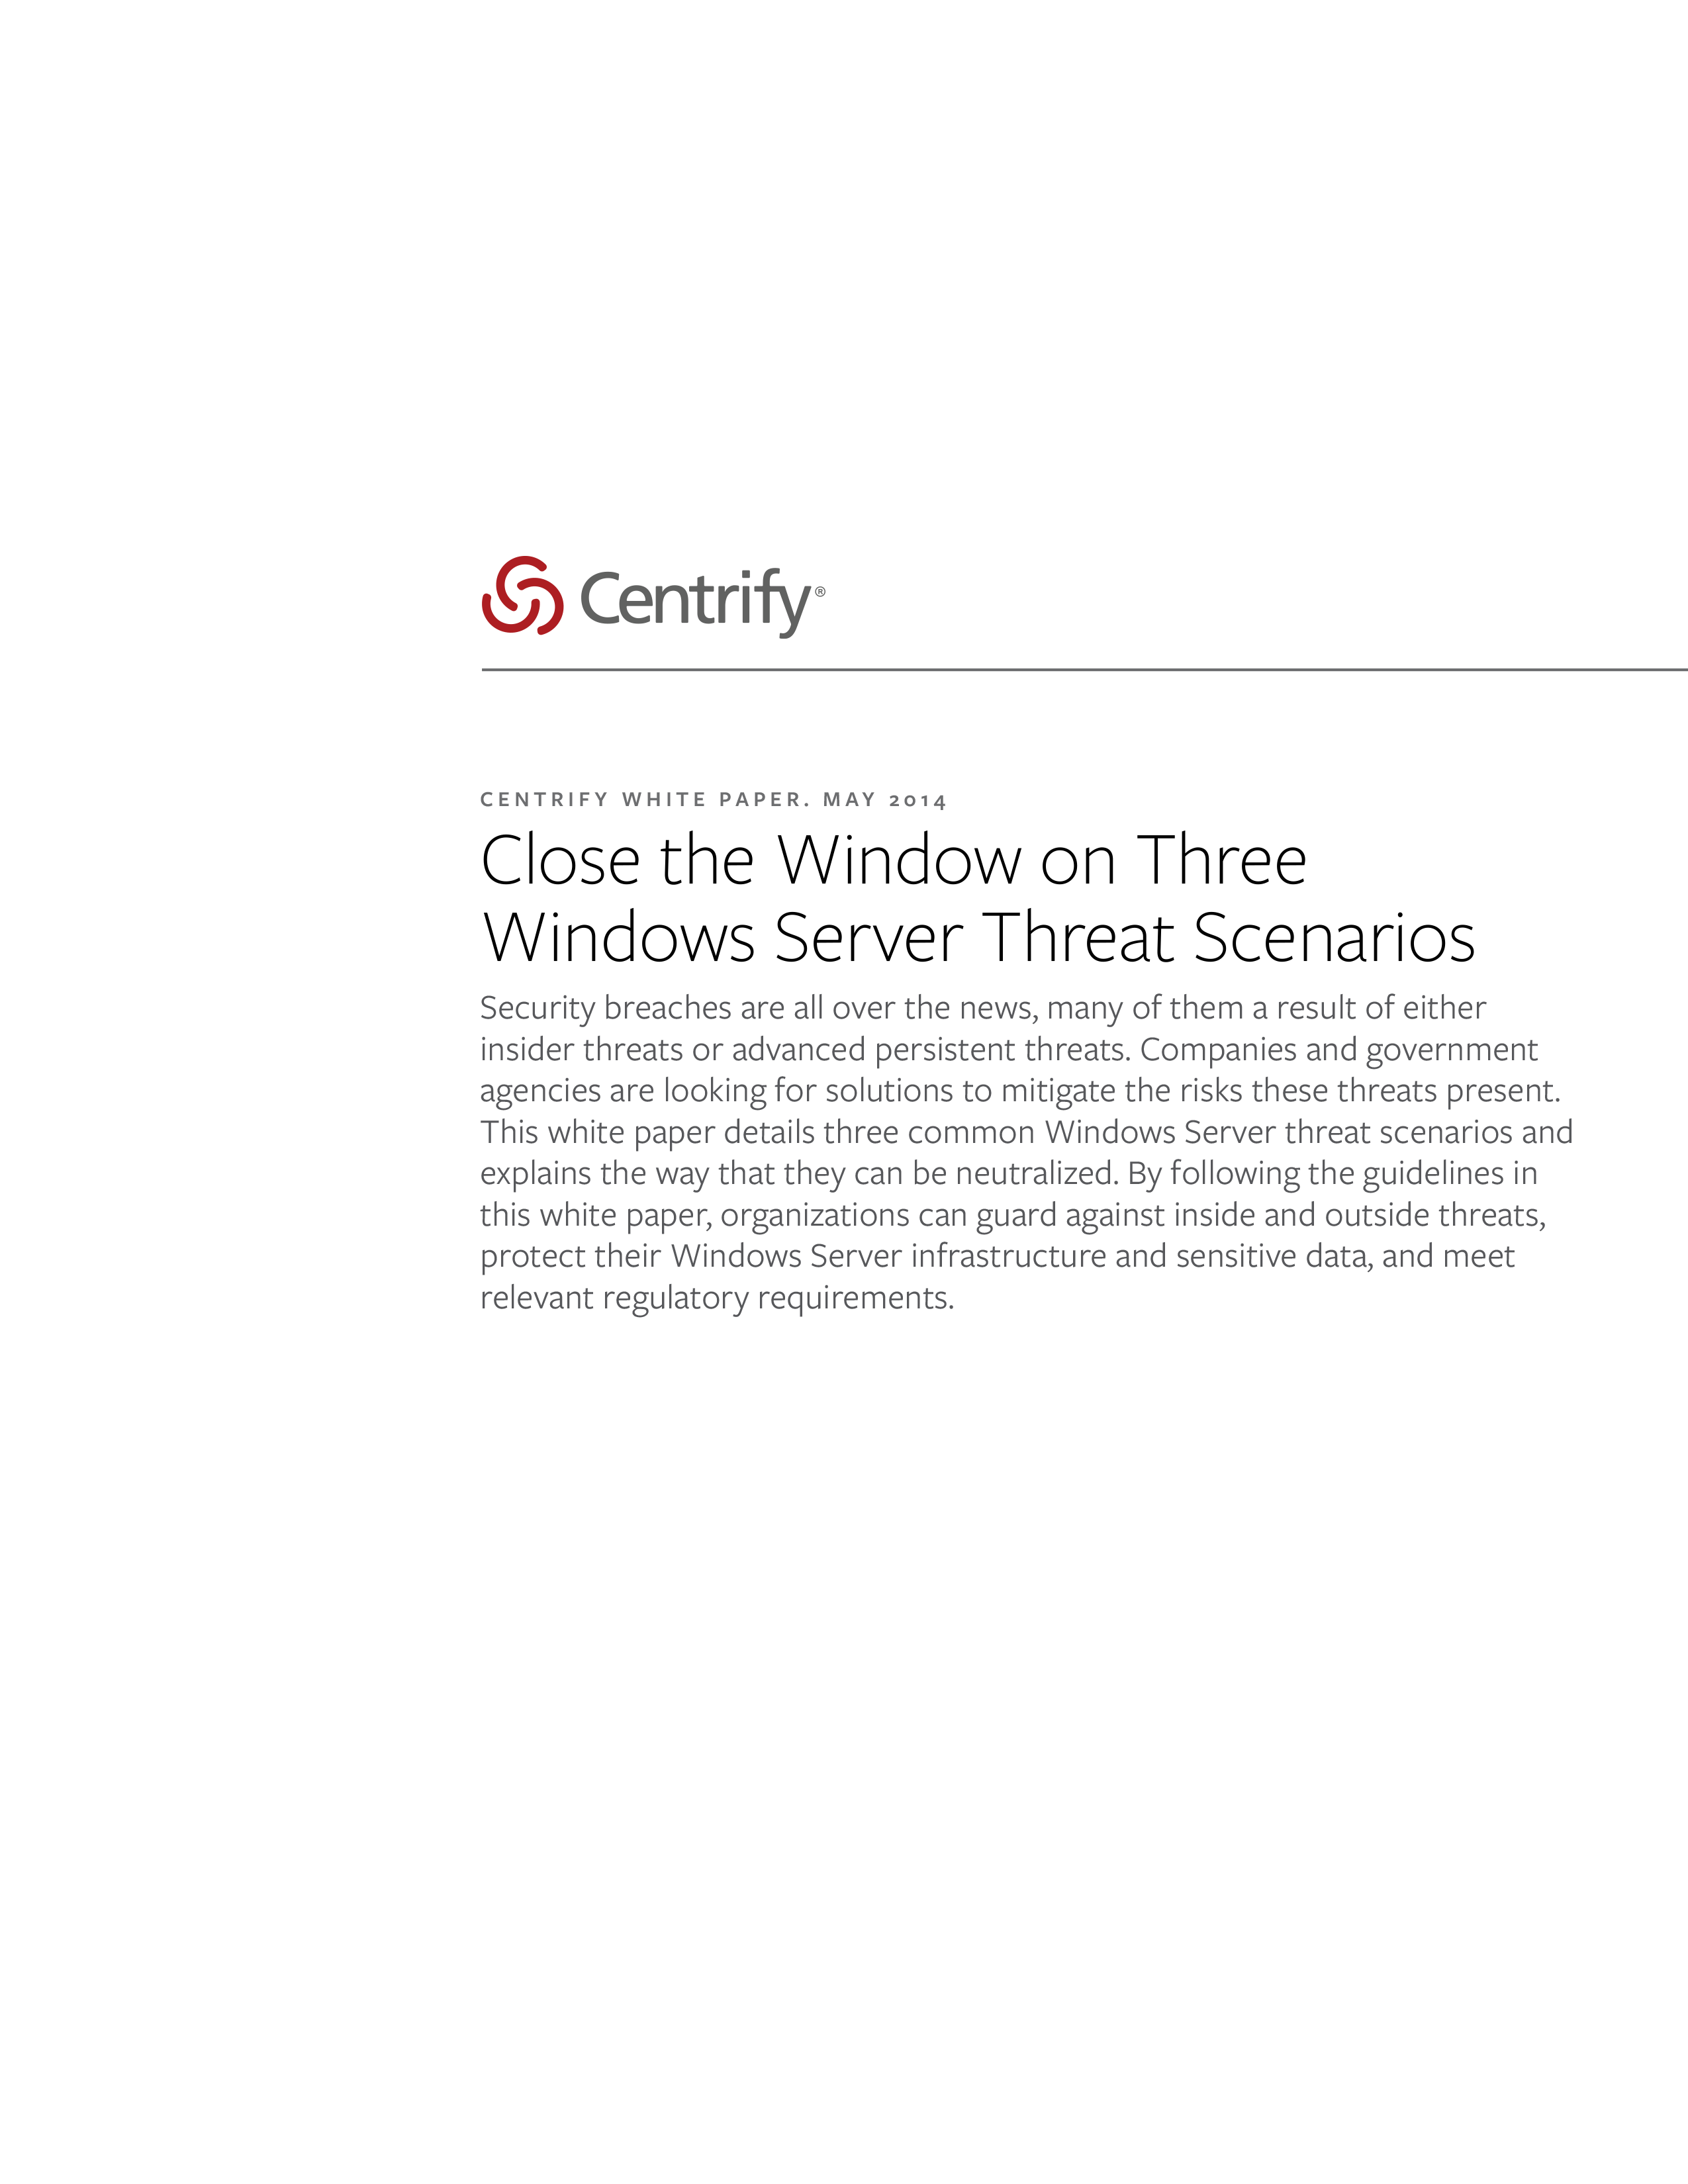 Close the Window on Three Windows Server Threat Scenarios